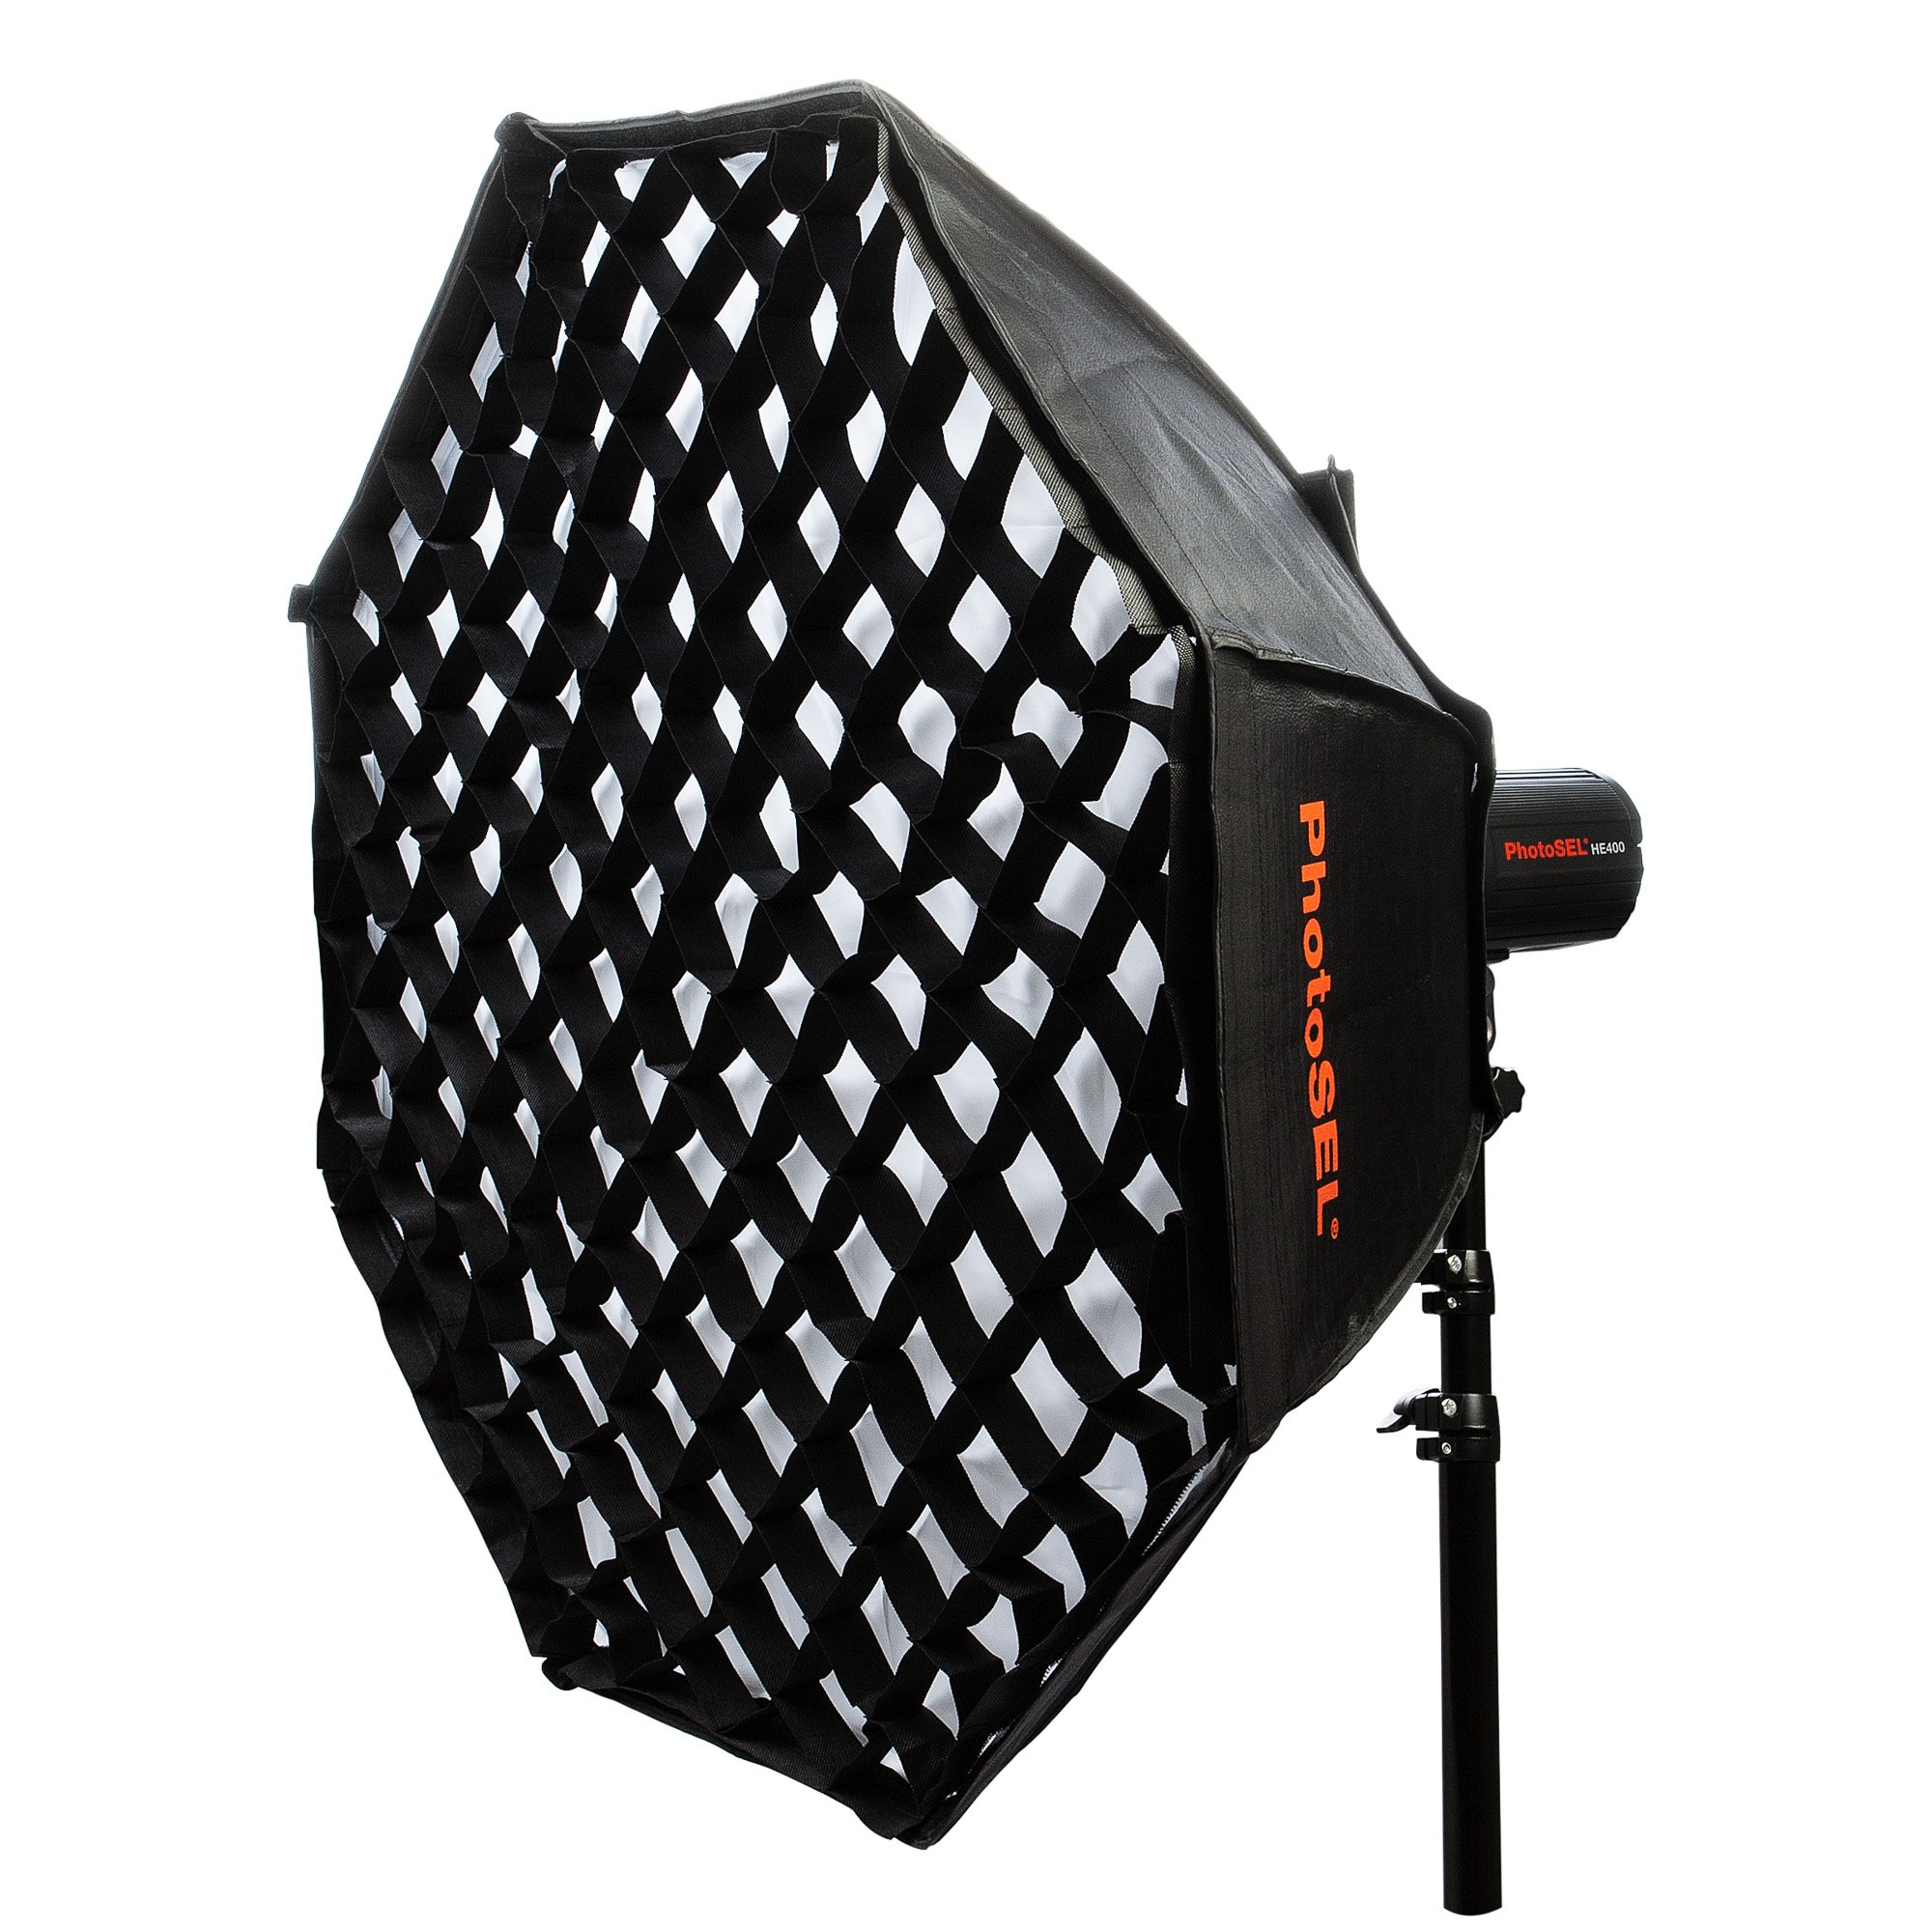 37 Octagon Honeycomb Grid Softbox With Flash Mounting For: PhotoSEL Octagonal Softbox With